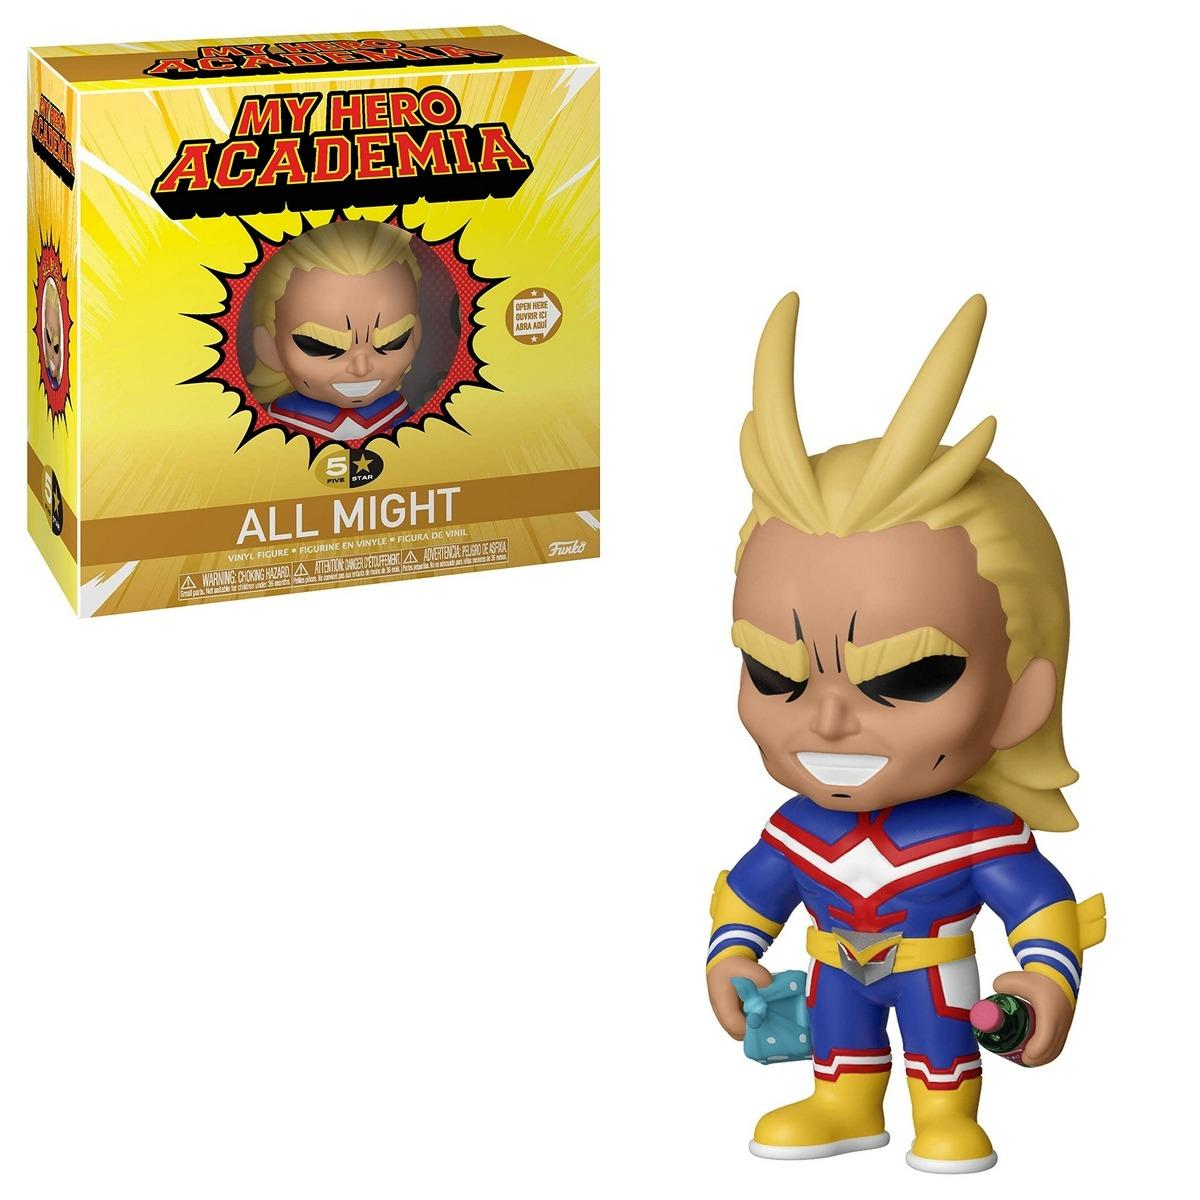 5 star all might jpg ok